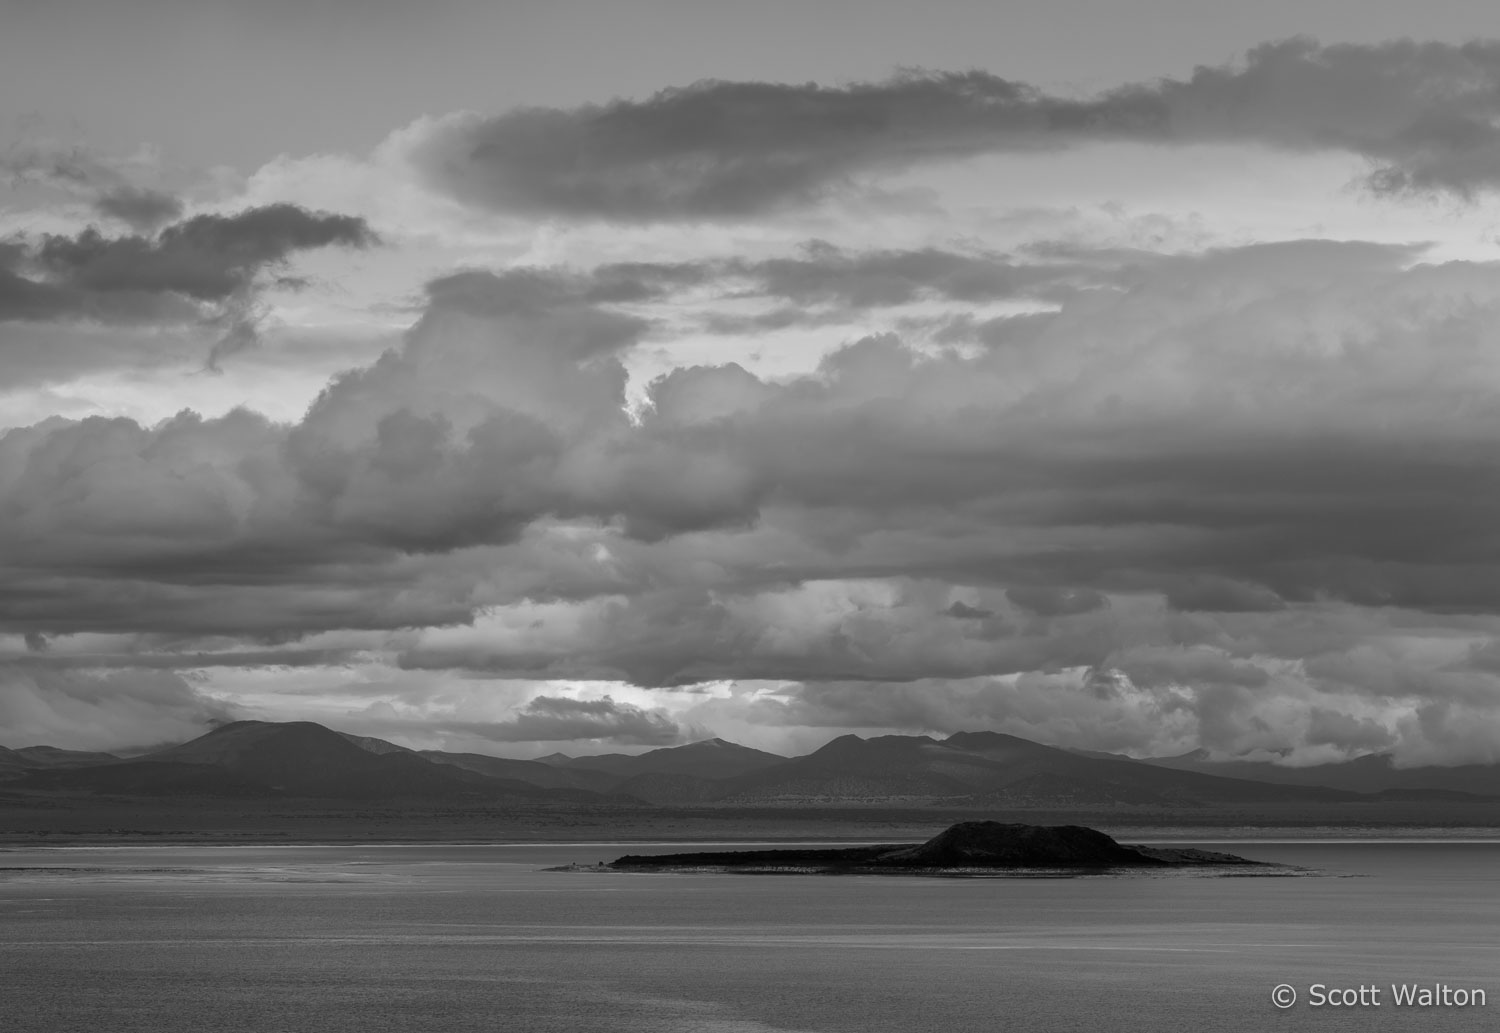 mono-lake-clouds-island-eastern-sierra-california.jpg